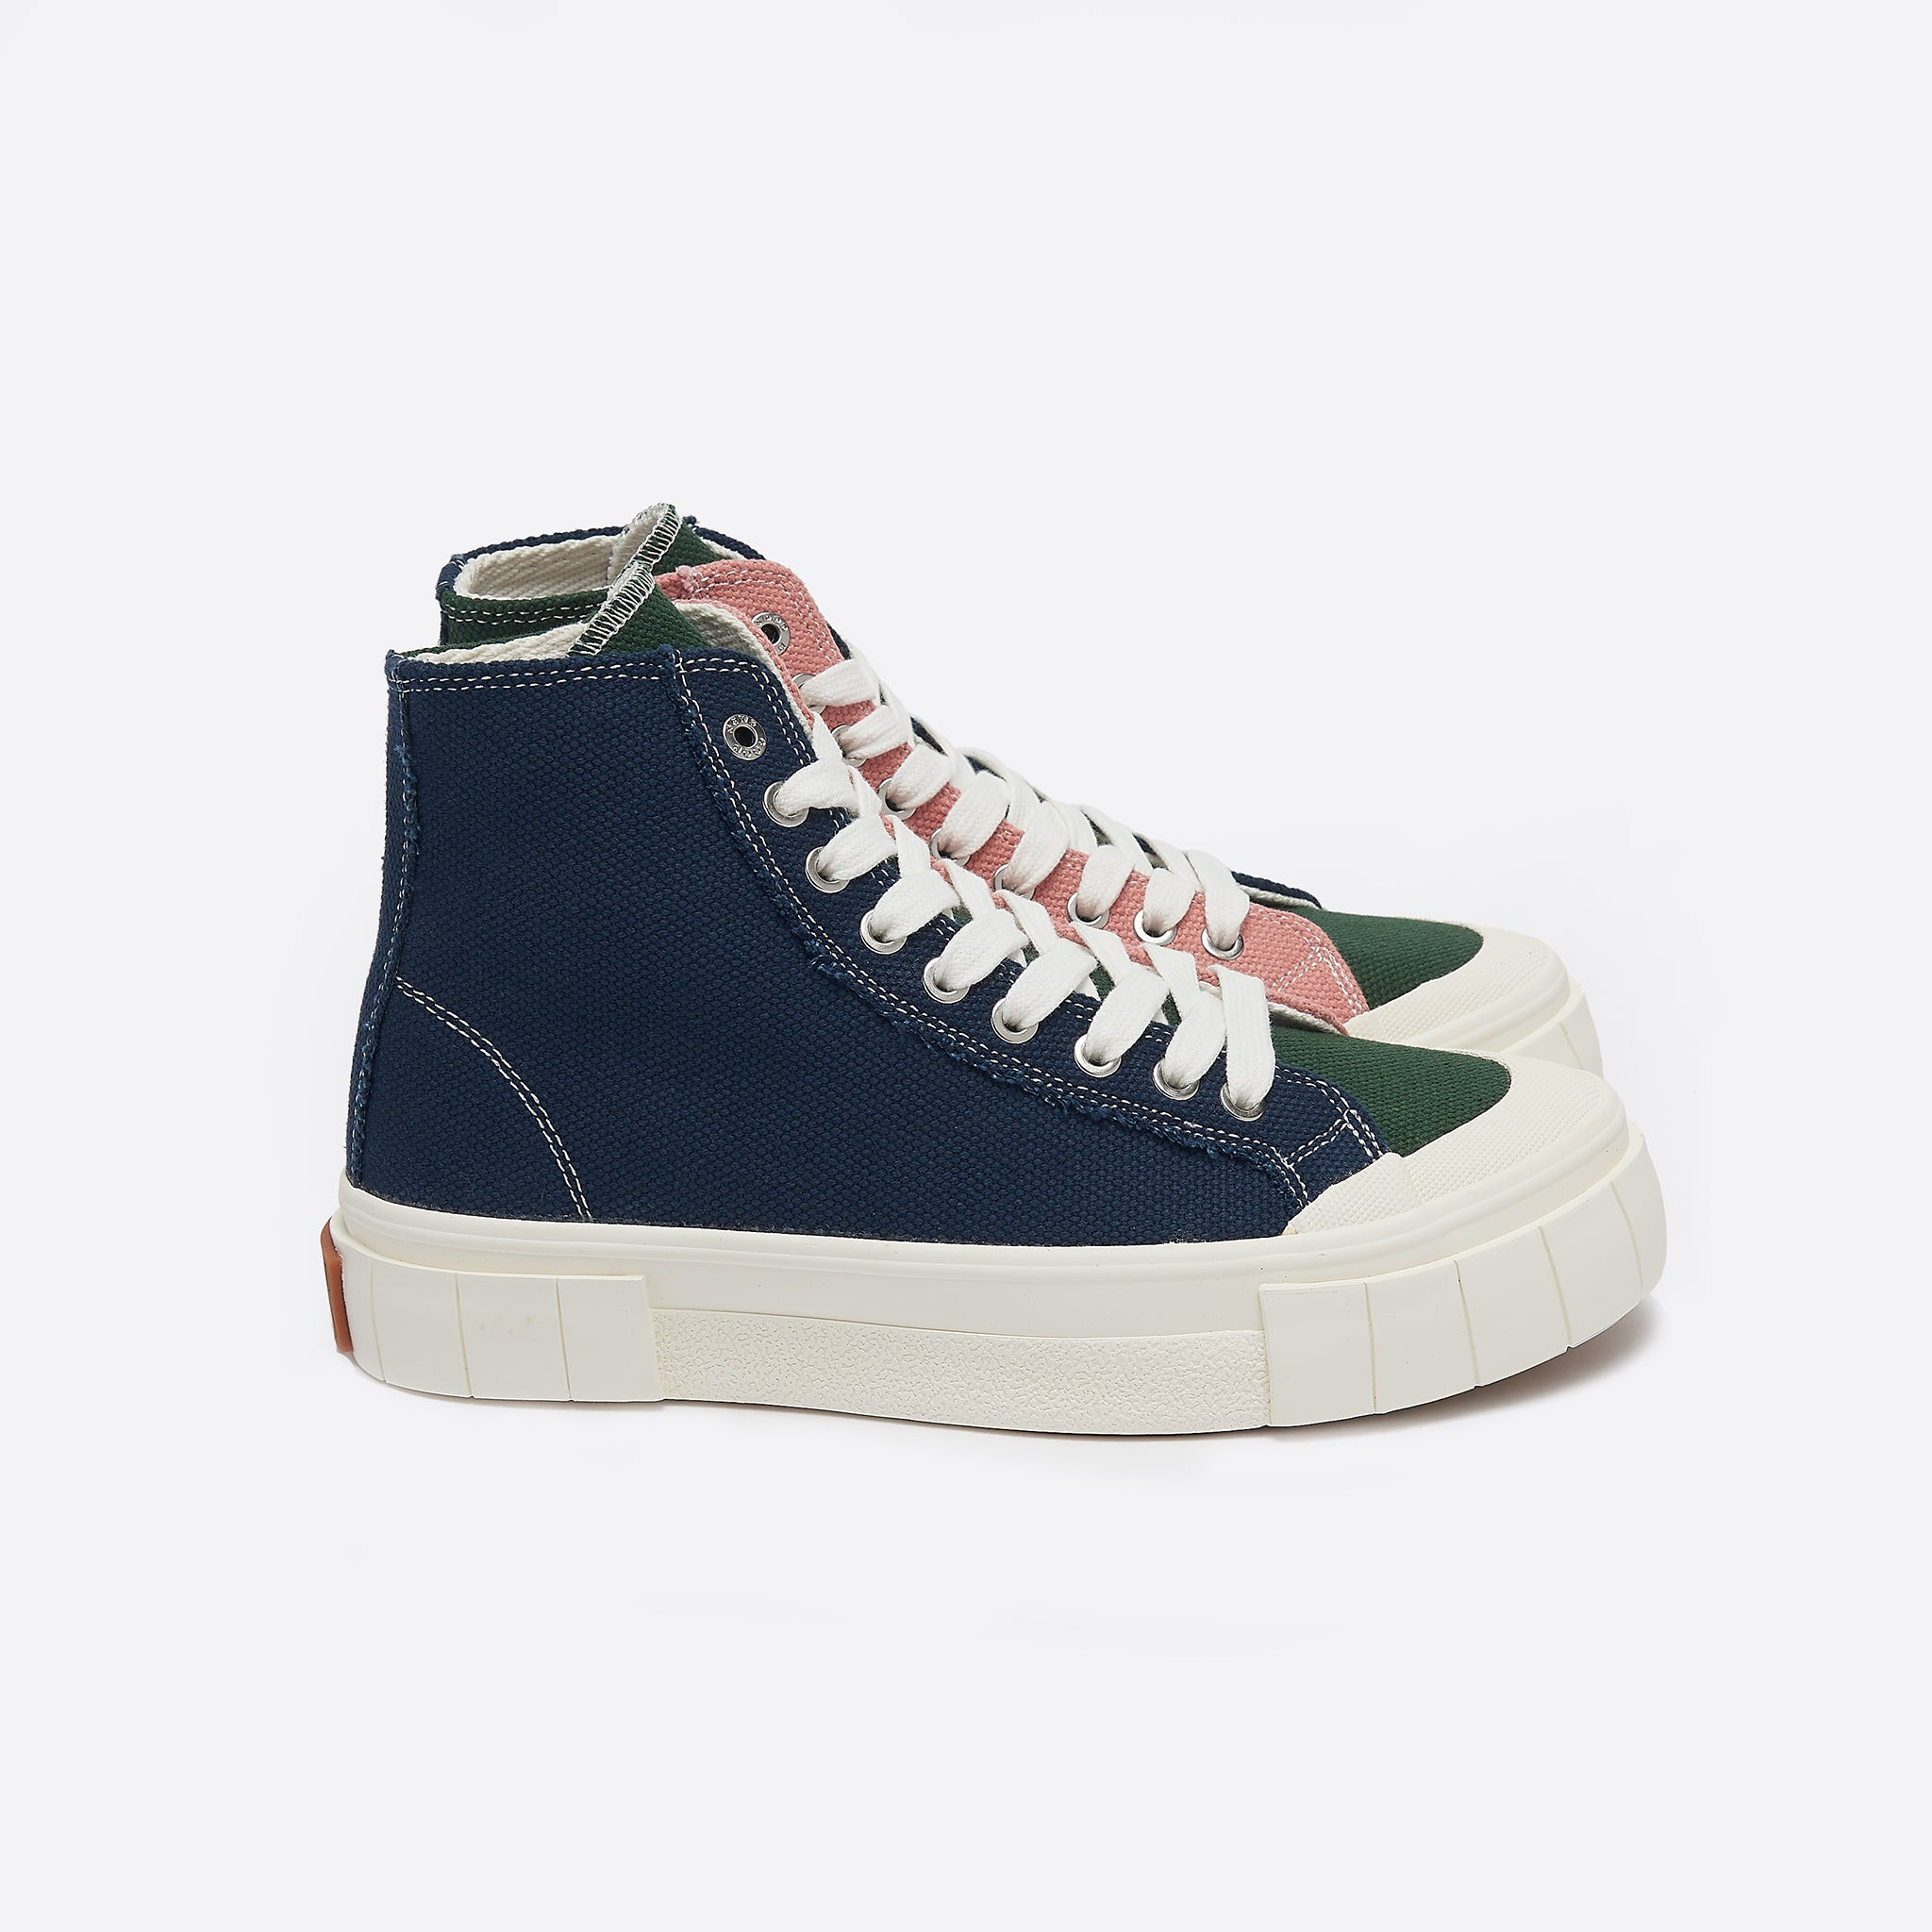 Good News Palm in Navy/Green/Pink